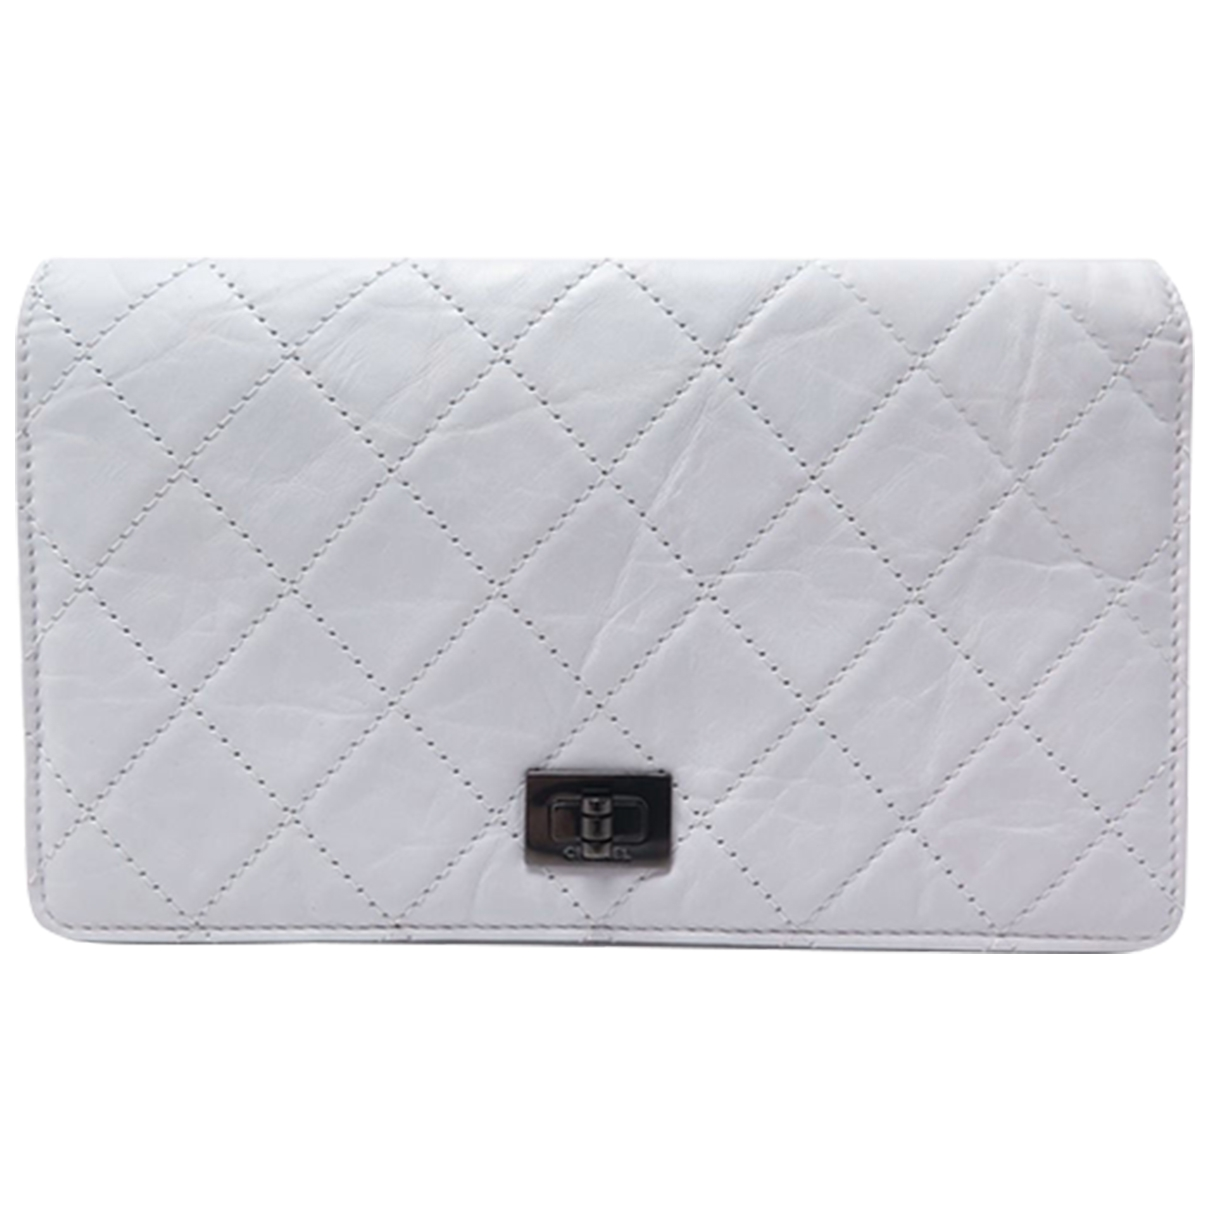 Chanel 2.55 Grey Leather wallet for Women \N